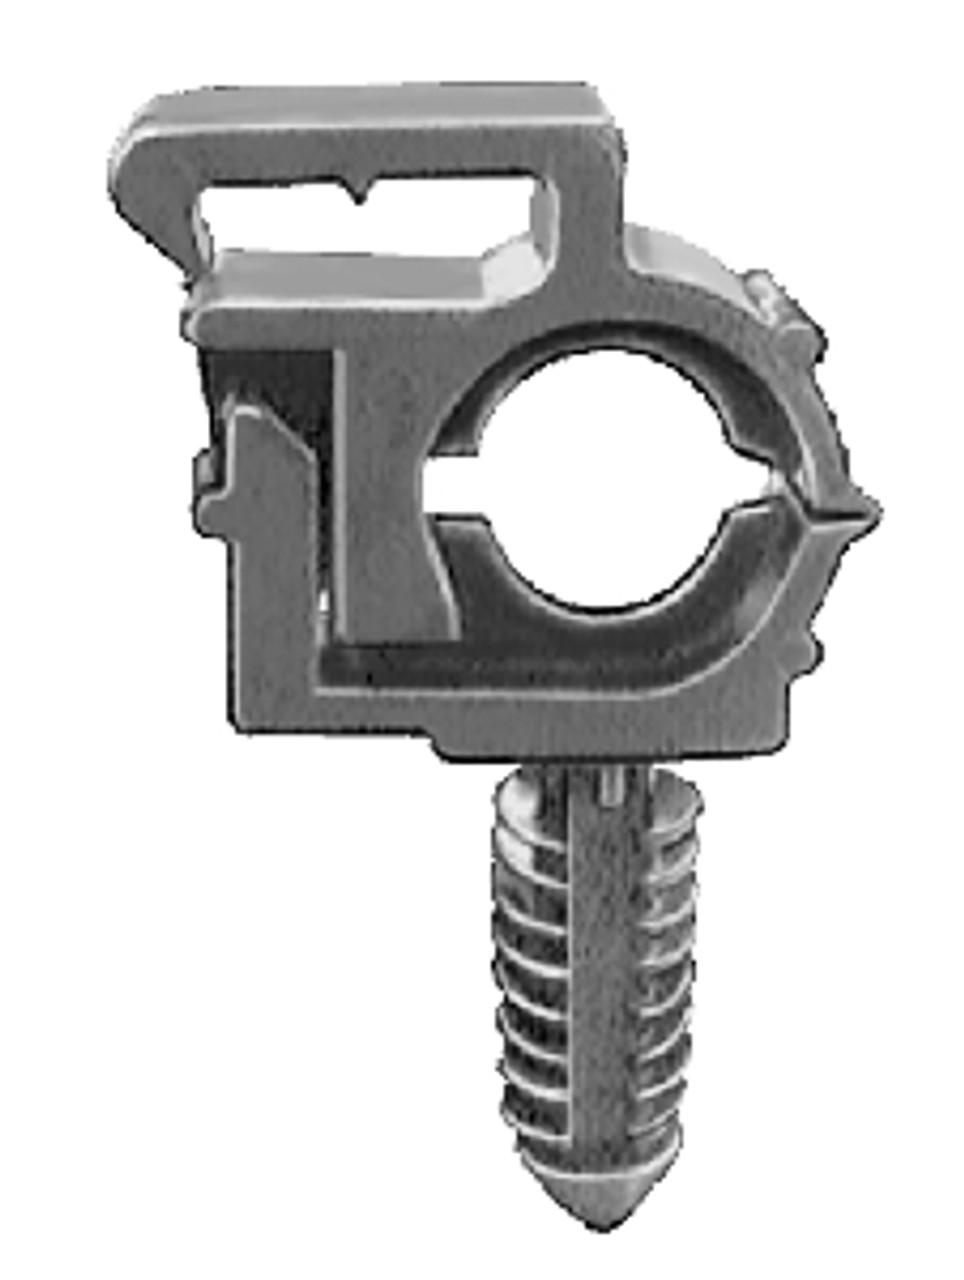 """Wire Loom Routing Clips Inner Diameter: 1/4"""" Outer Diameter: 3/8"""" OEM# 12040984 Nylon Type 3 15 Per Box Click Next Image For Wire Loom Clip Size Chart"""